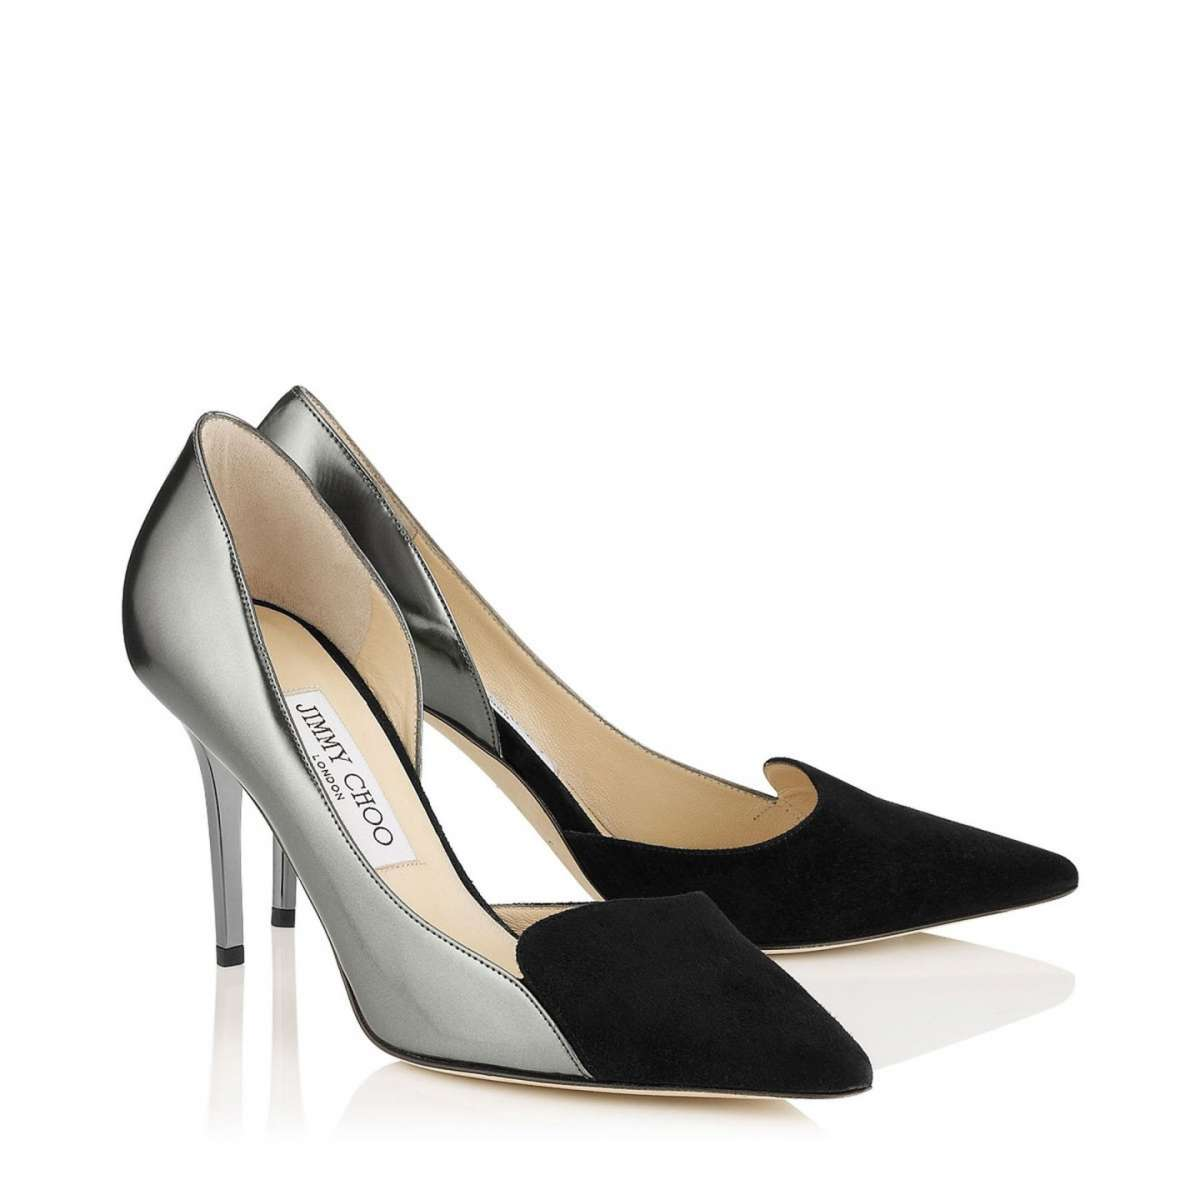 Pumps bicolor Jimmy Choo